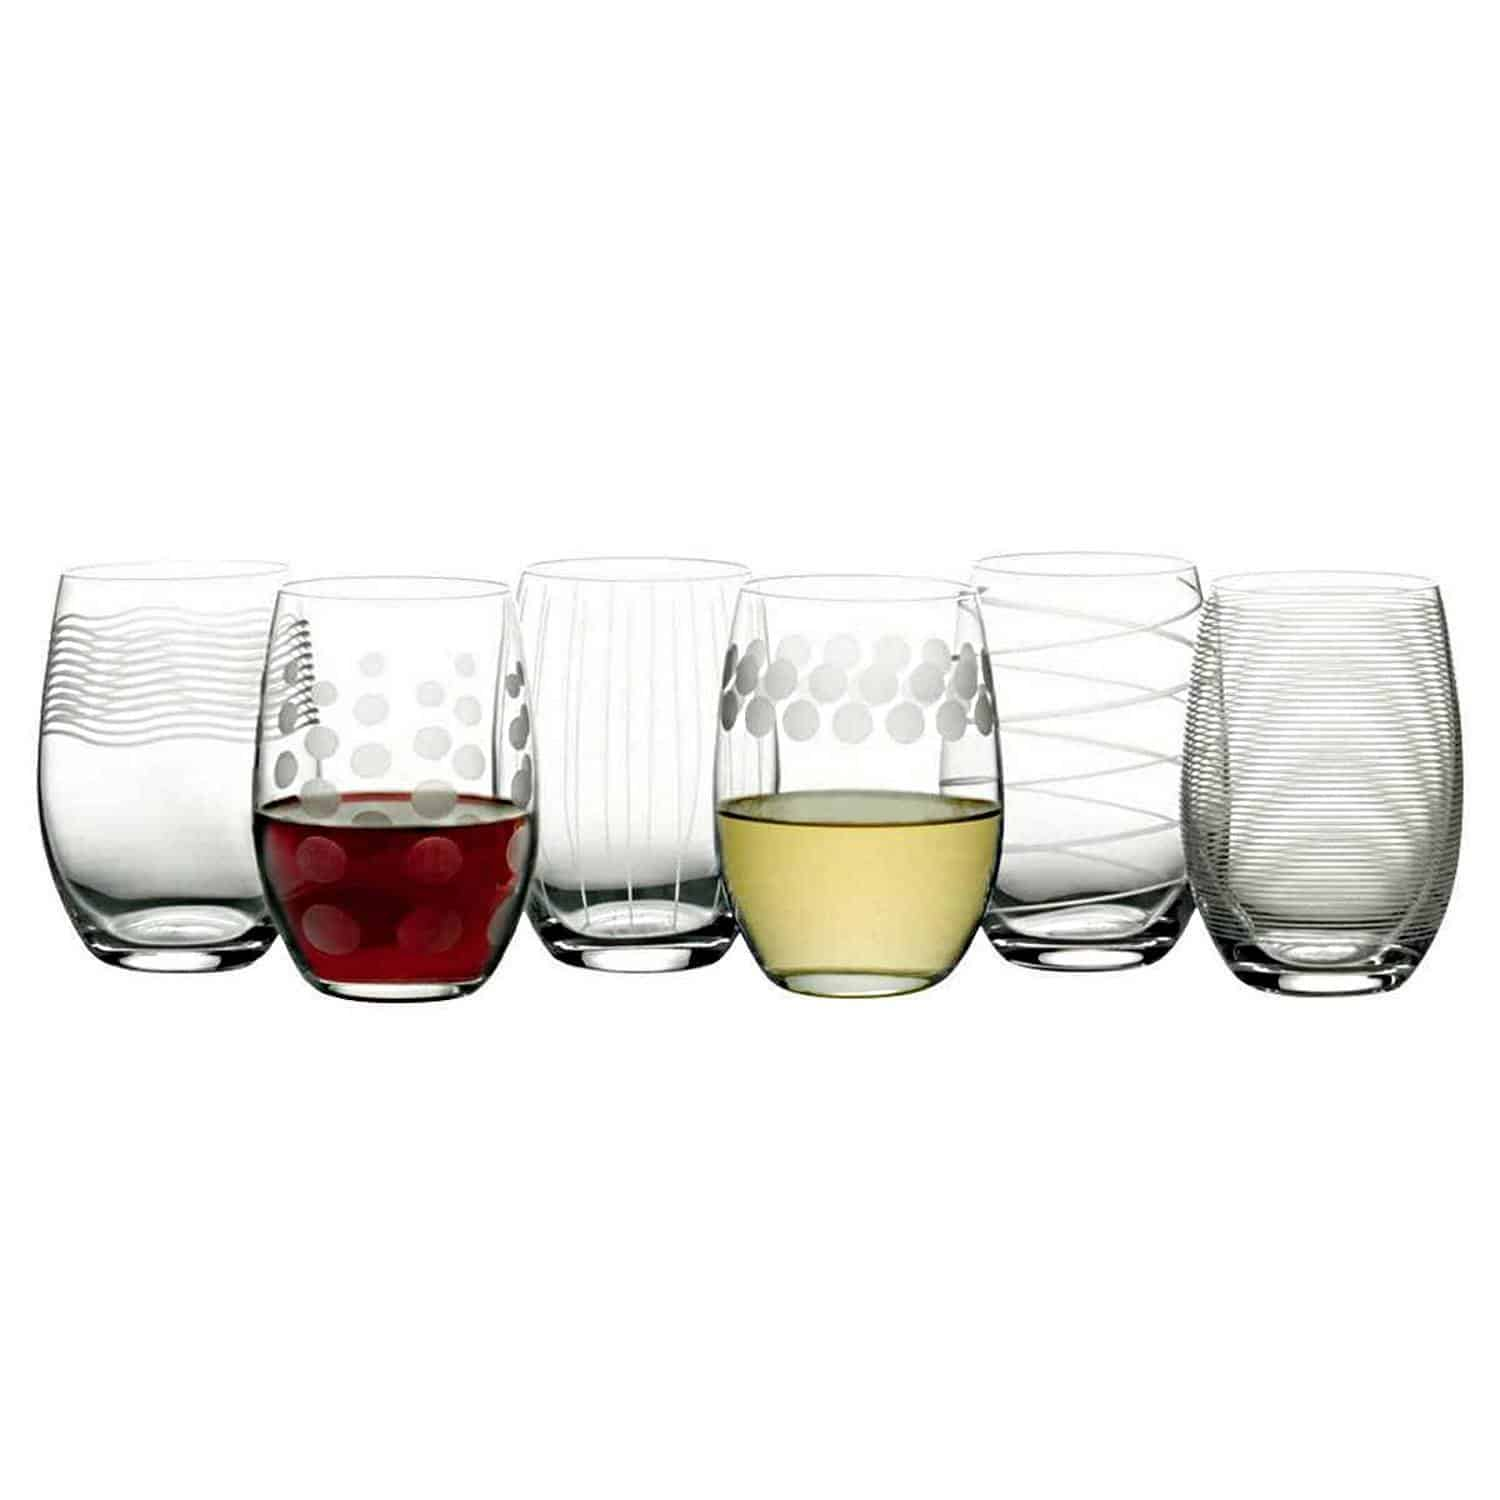 Lead-free crystal wine glass set with dishwasher feature.